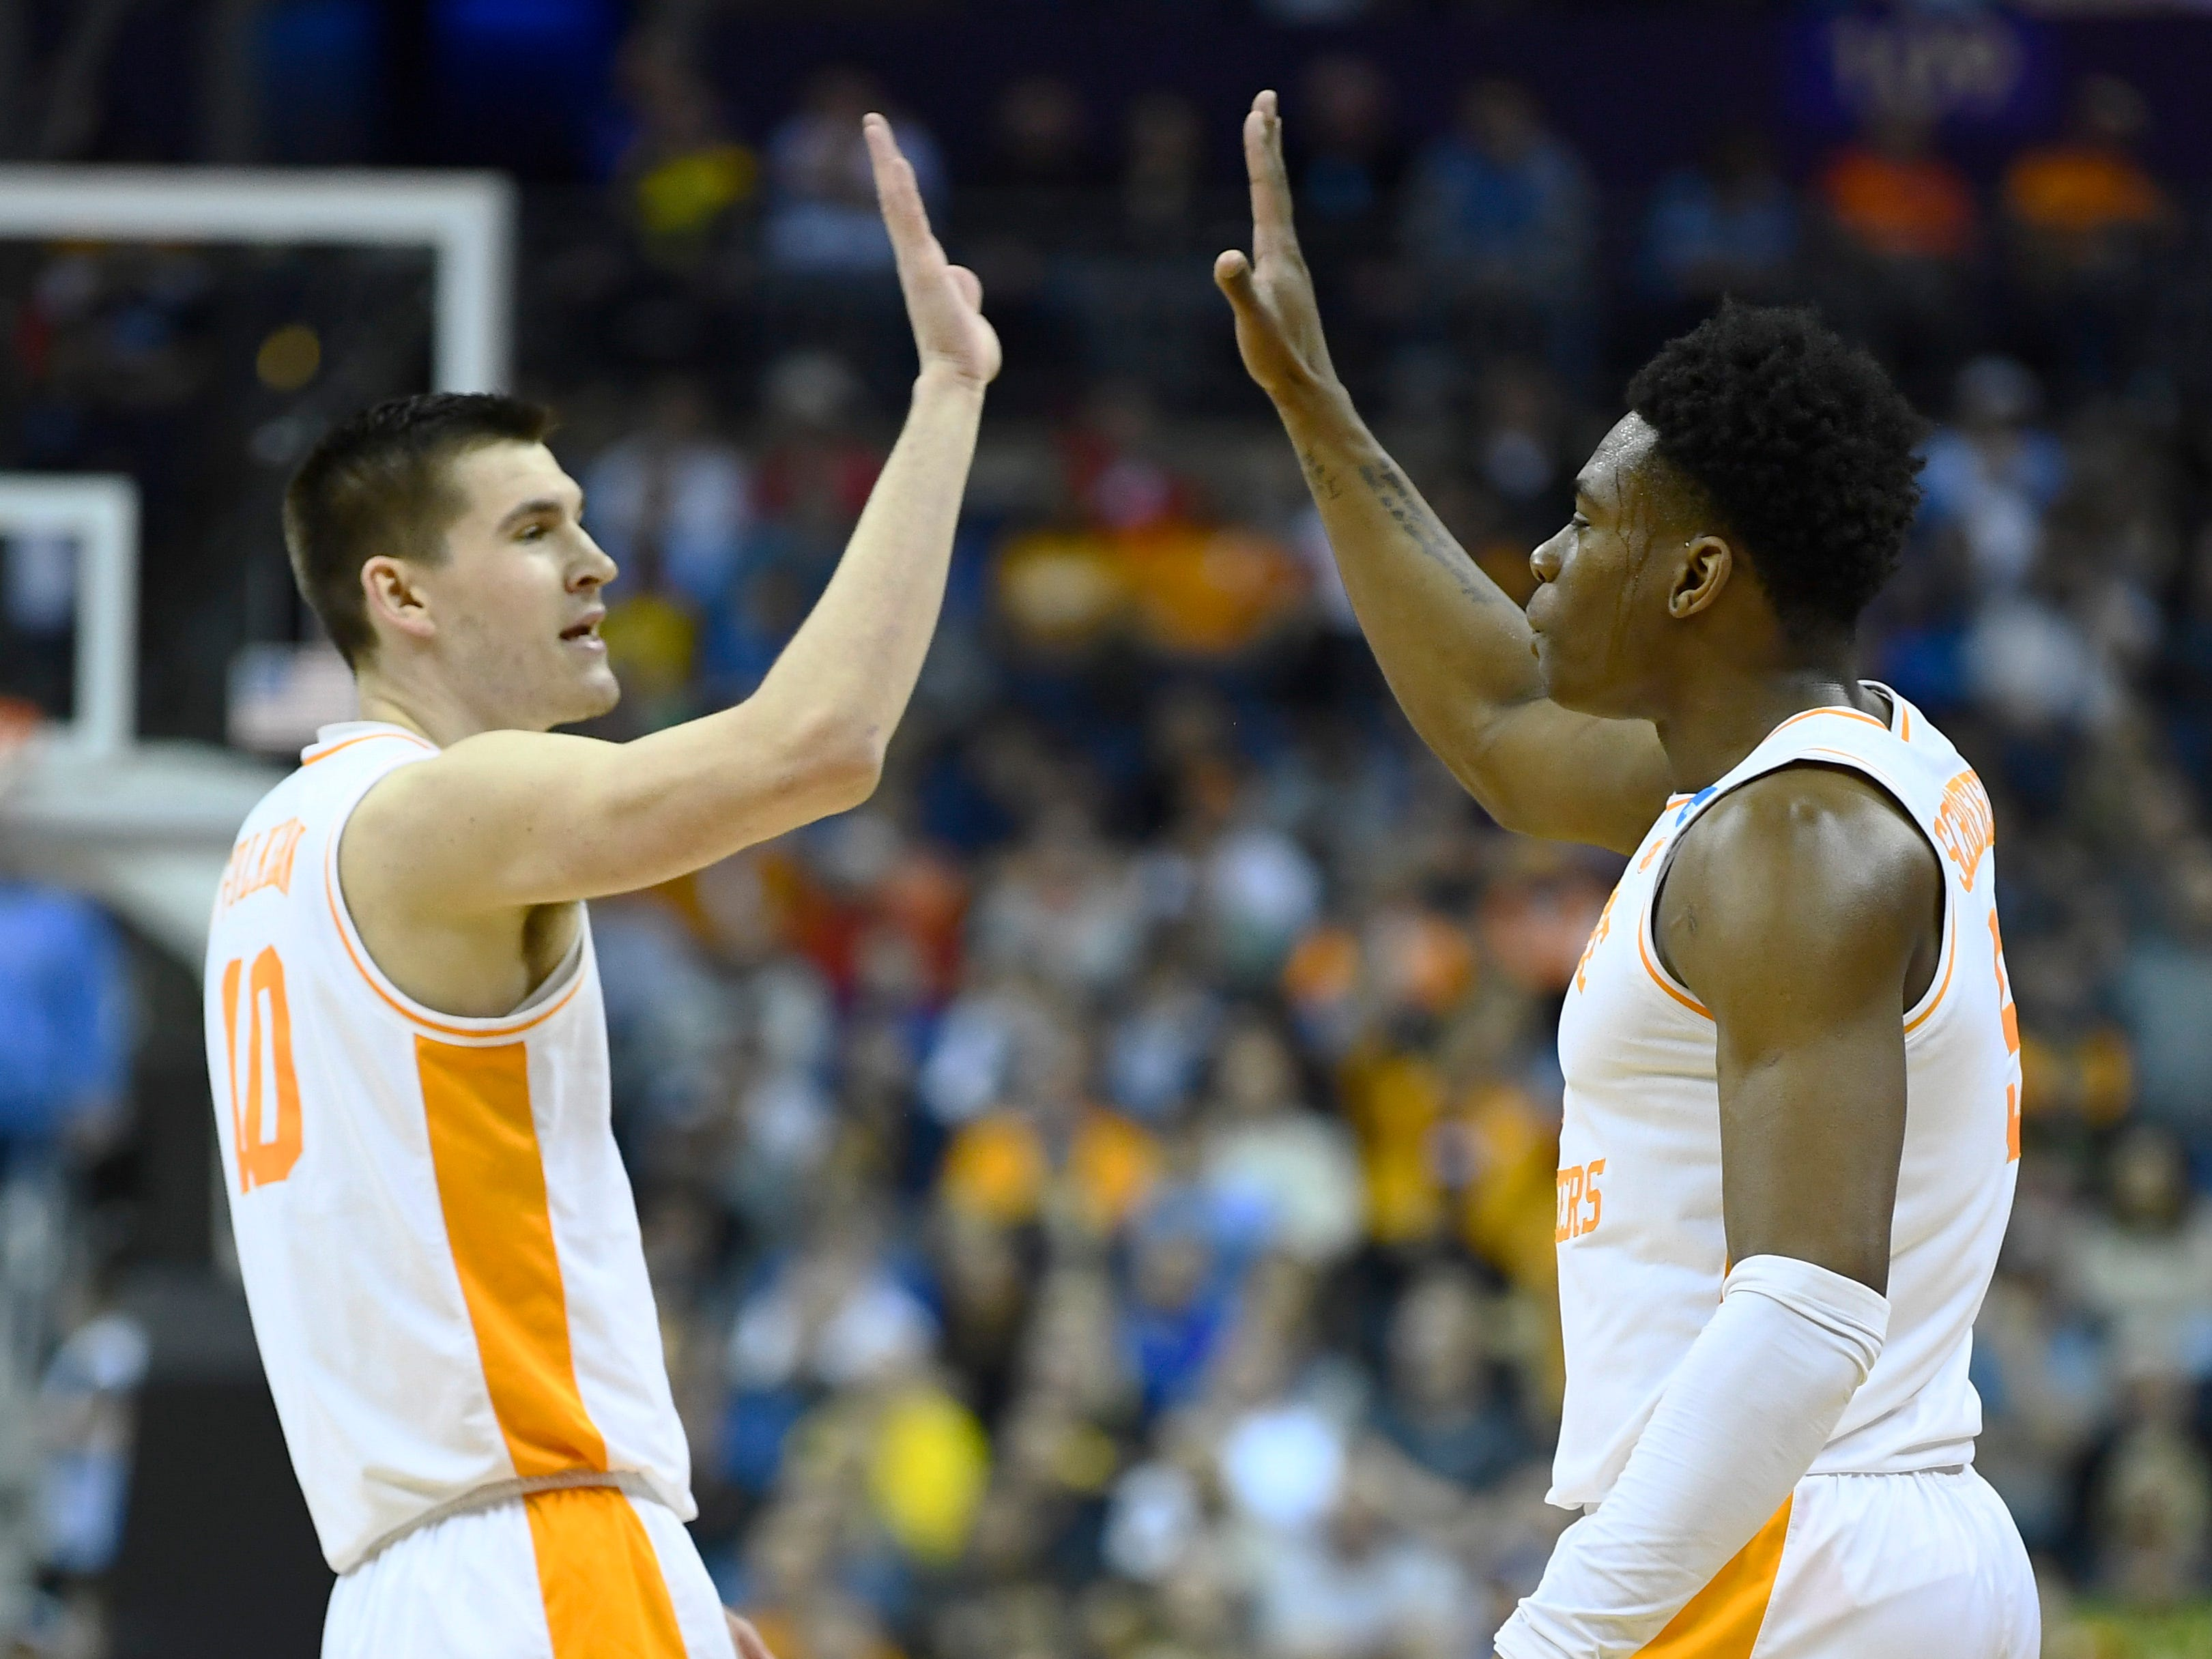 Tennessee forward John Fulkerson (10) and guard Admiral Schofield (5) high five during the first half of the Tennessee VolunteersÕ basketball game against the Iowa Hawkeyes in the second round of the NCAA Tournament at Nationwide Arena in Columbus, Ohio, Sunday, March 24, 2019.